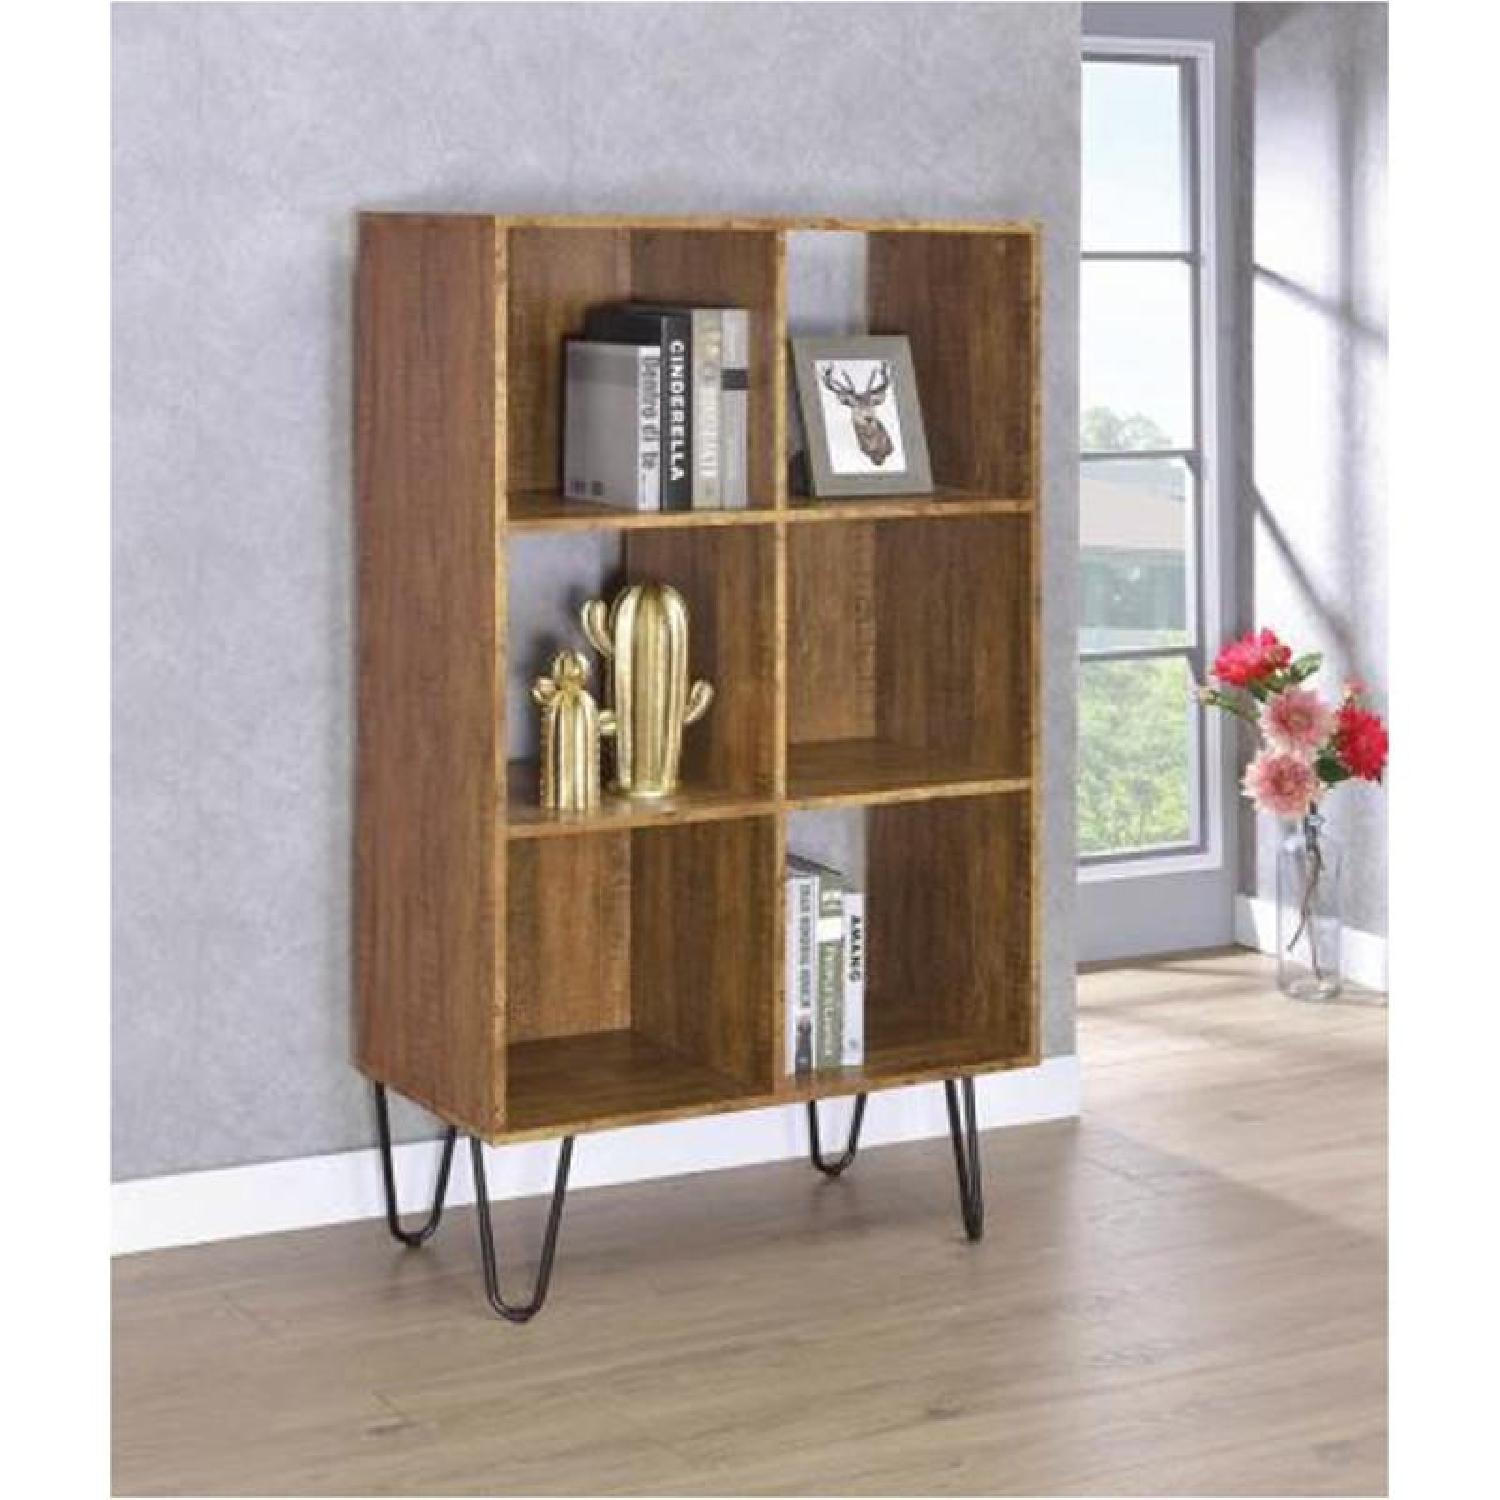 Rustic Amber Bookcase w/ Hair Pin Legs - image-3